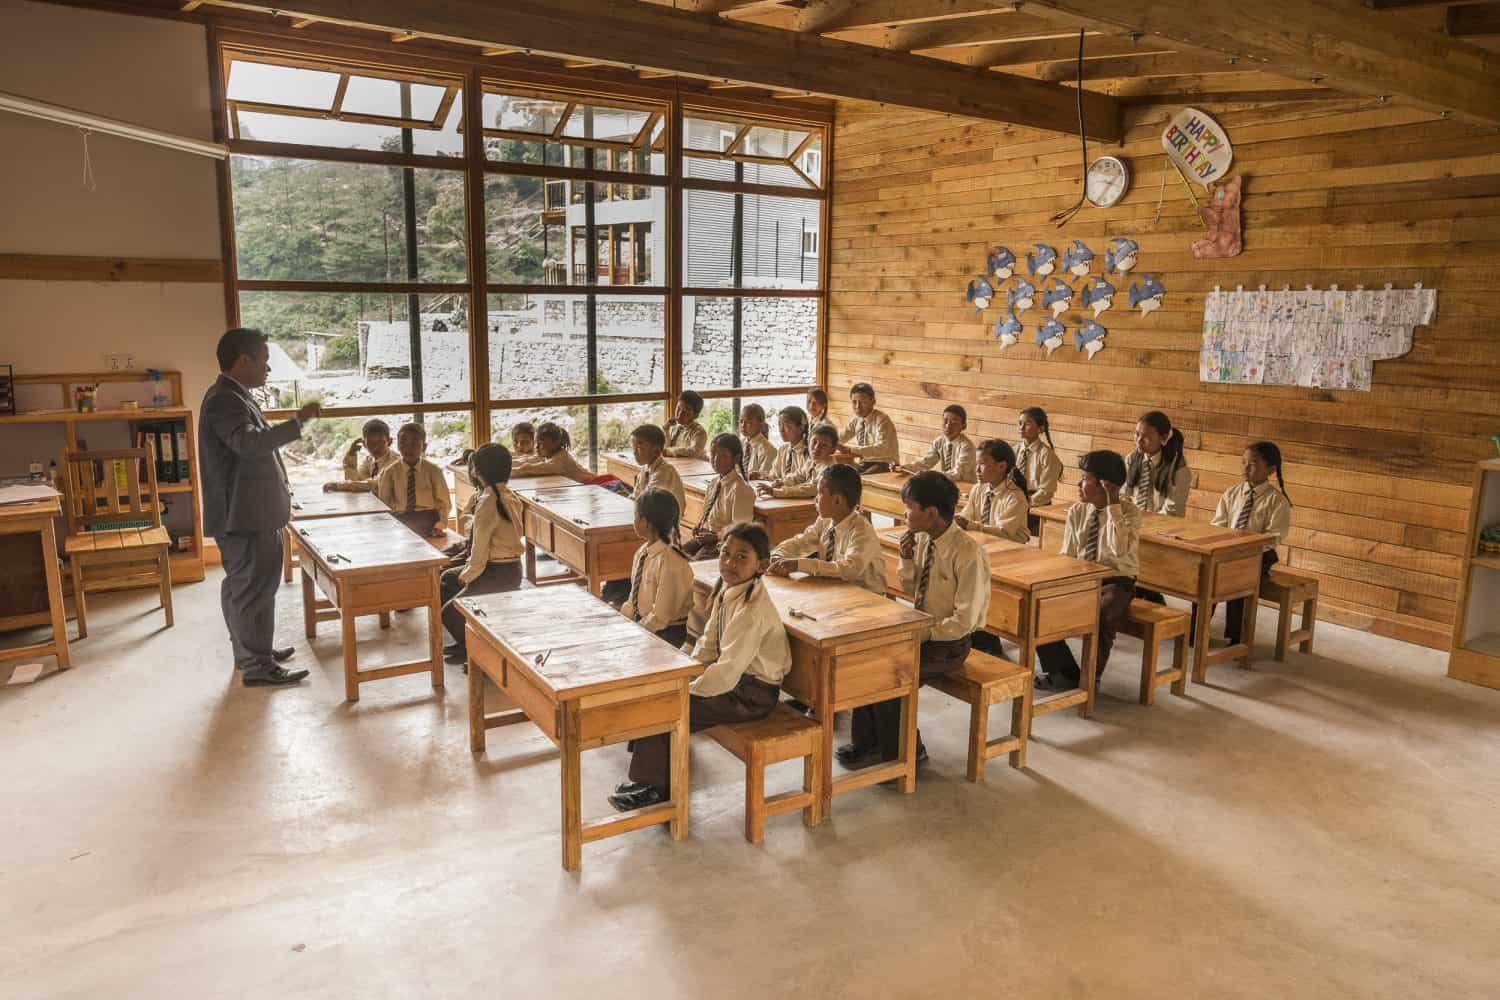 Education, classroom setting in Yangri